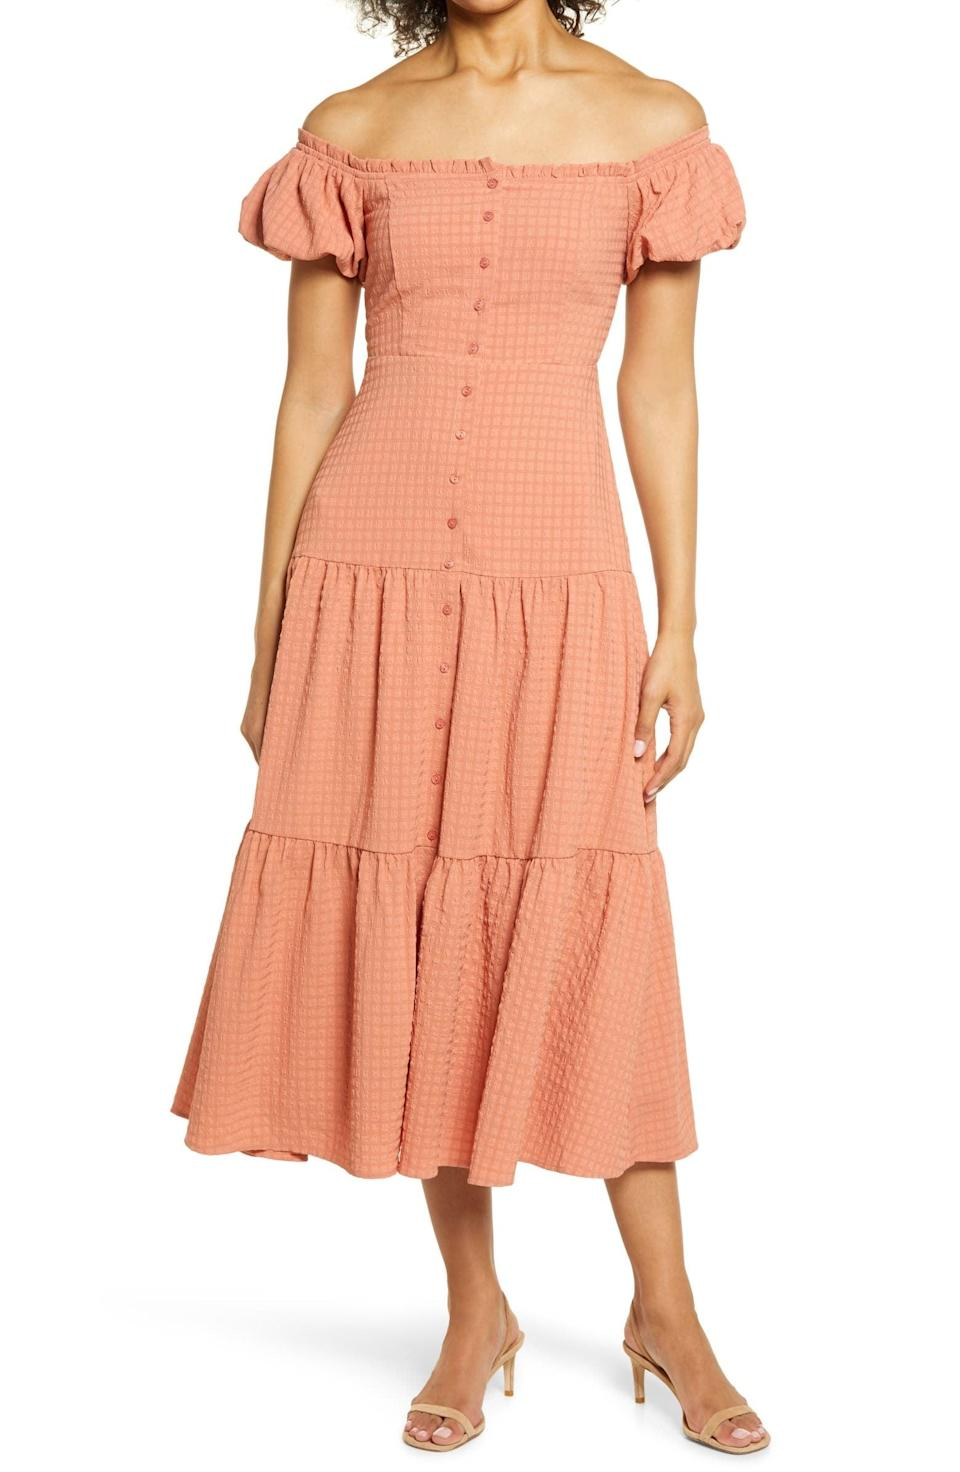 <p>This <span>Floret Studios Off the Shoulder Tiered Midi Dress</span> ($89) looks polished with its tiered skirt, puffy sleeves, and shoulder-baring neckline.</p>